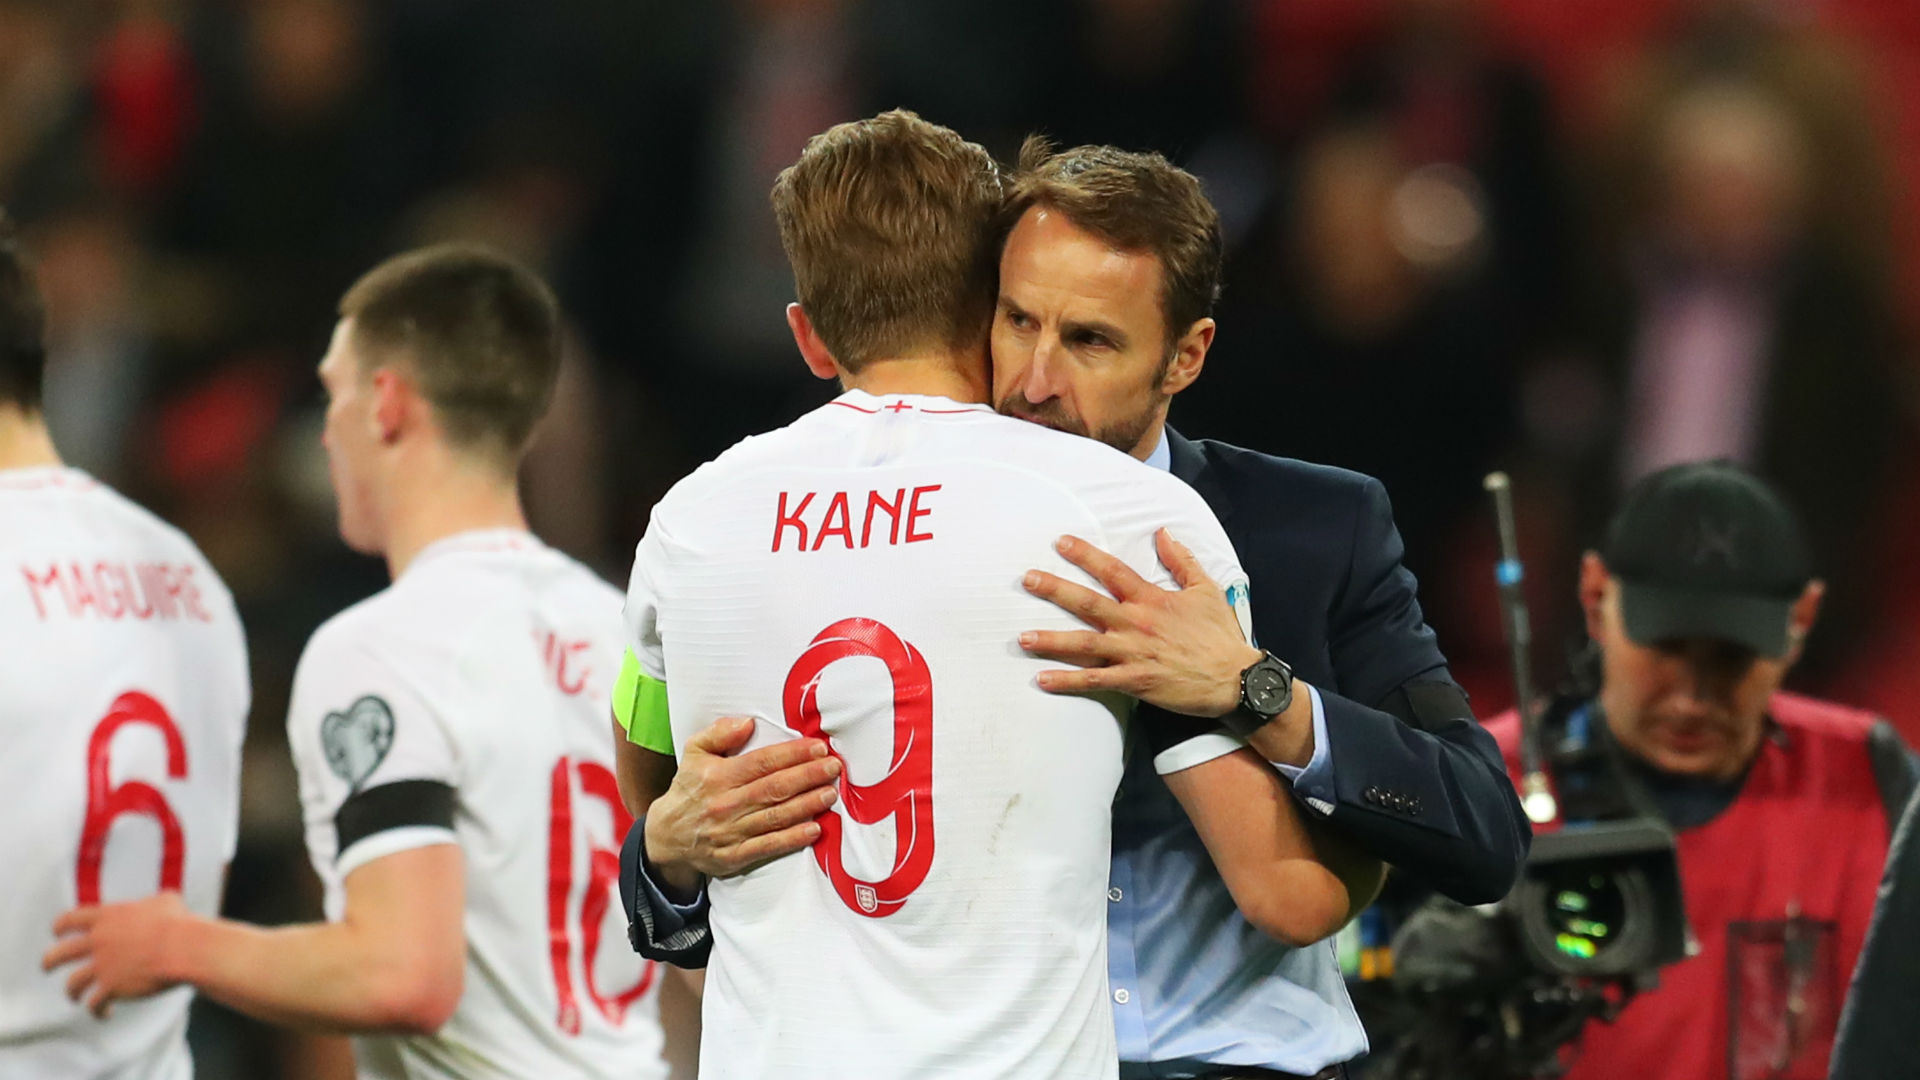 Kane proud to captain England's youngsters